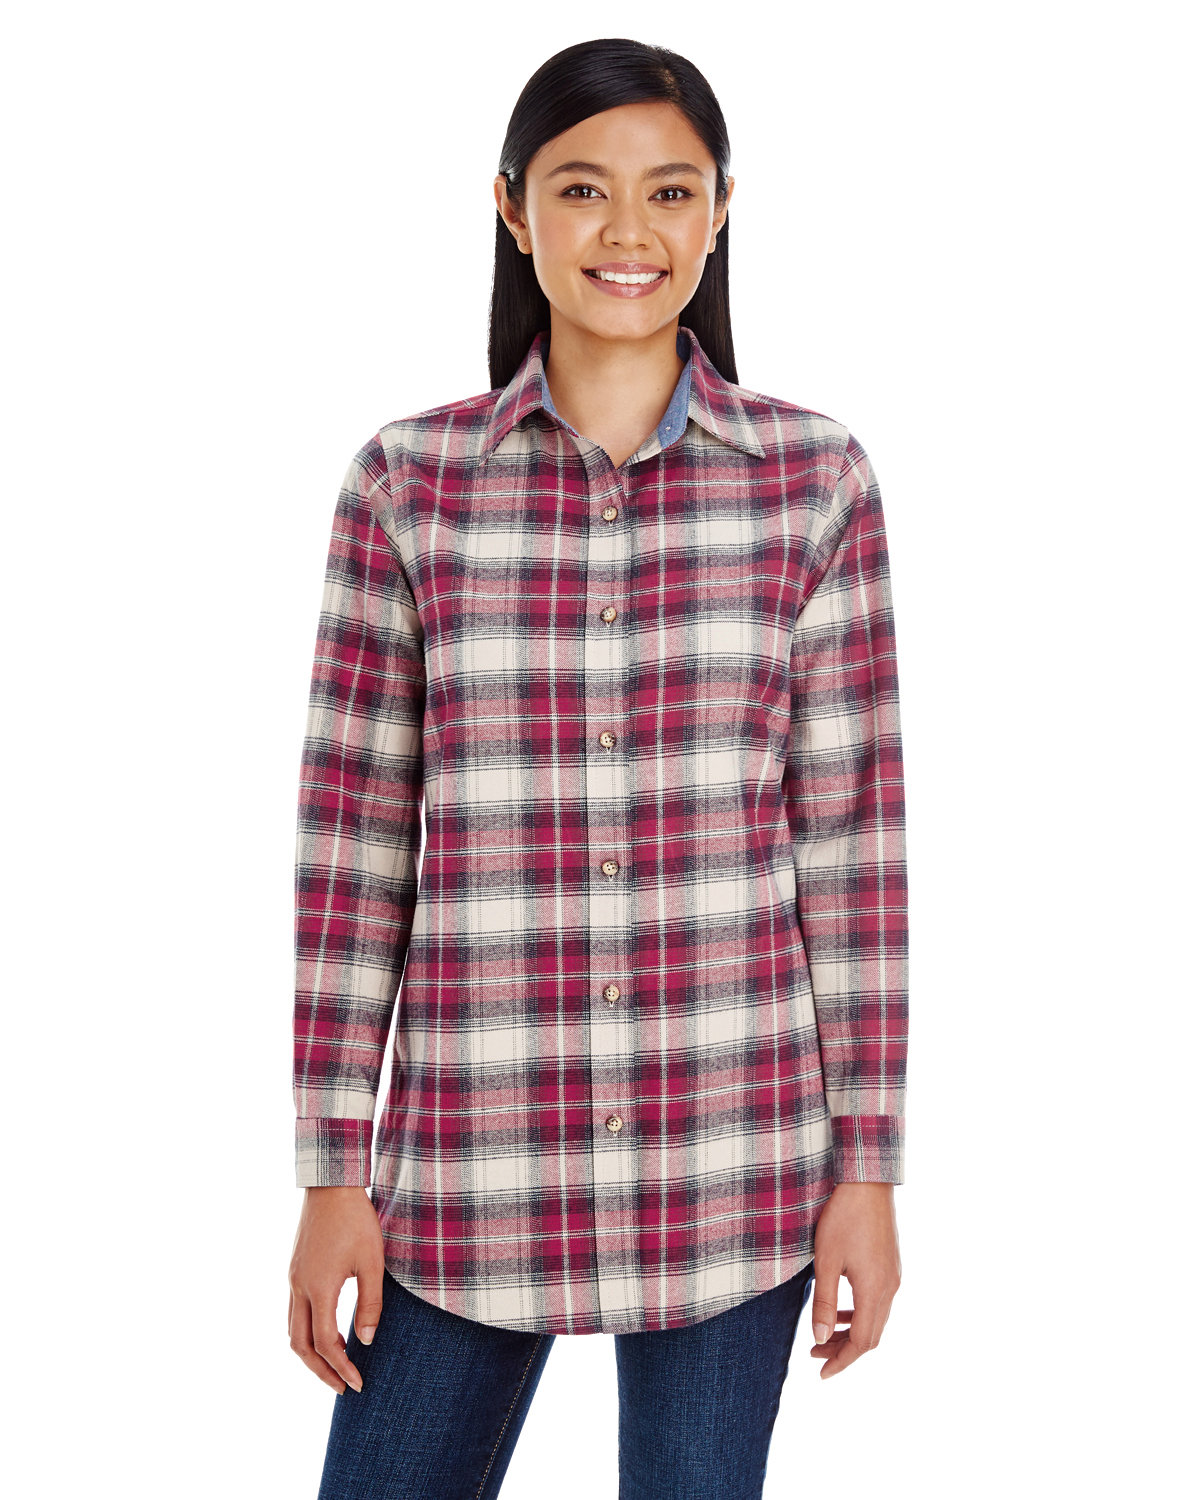 Backpacker Ladies' Yarn-Dyed Flannel Shirt INDEPENDENT